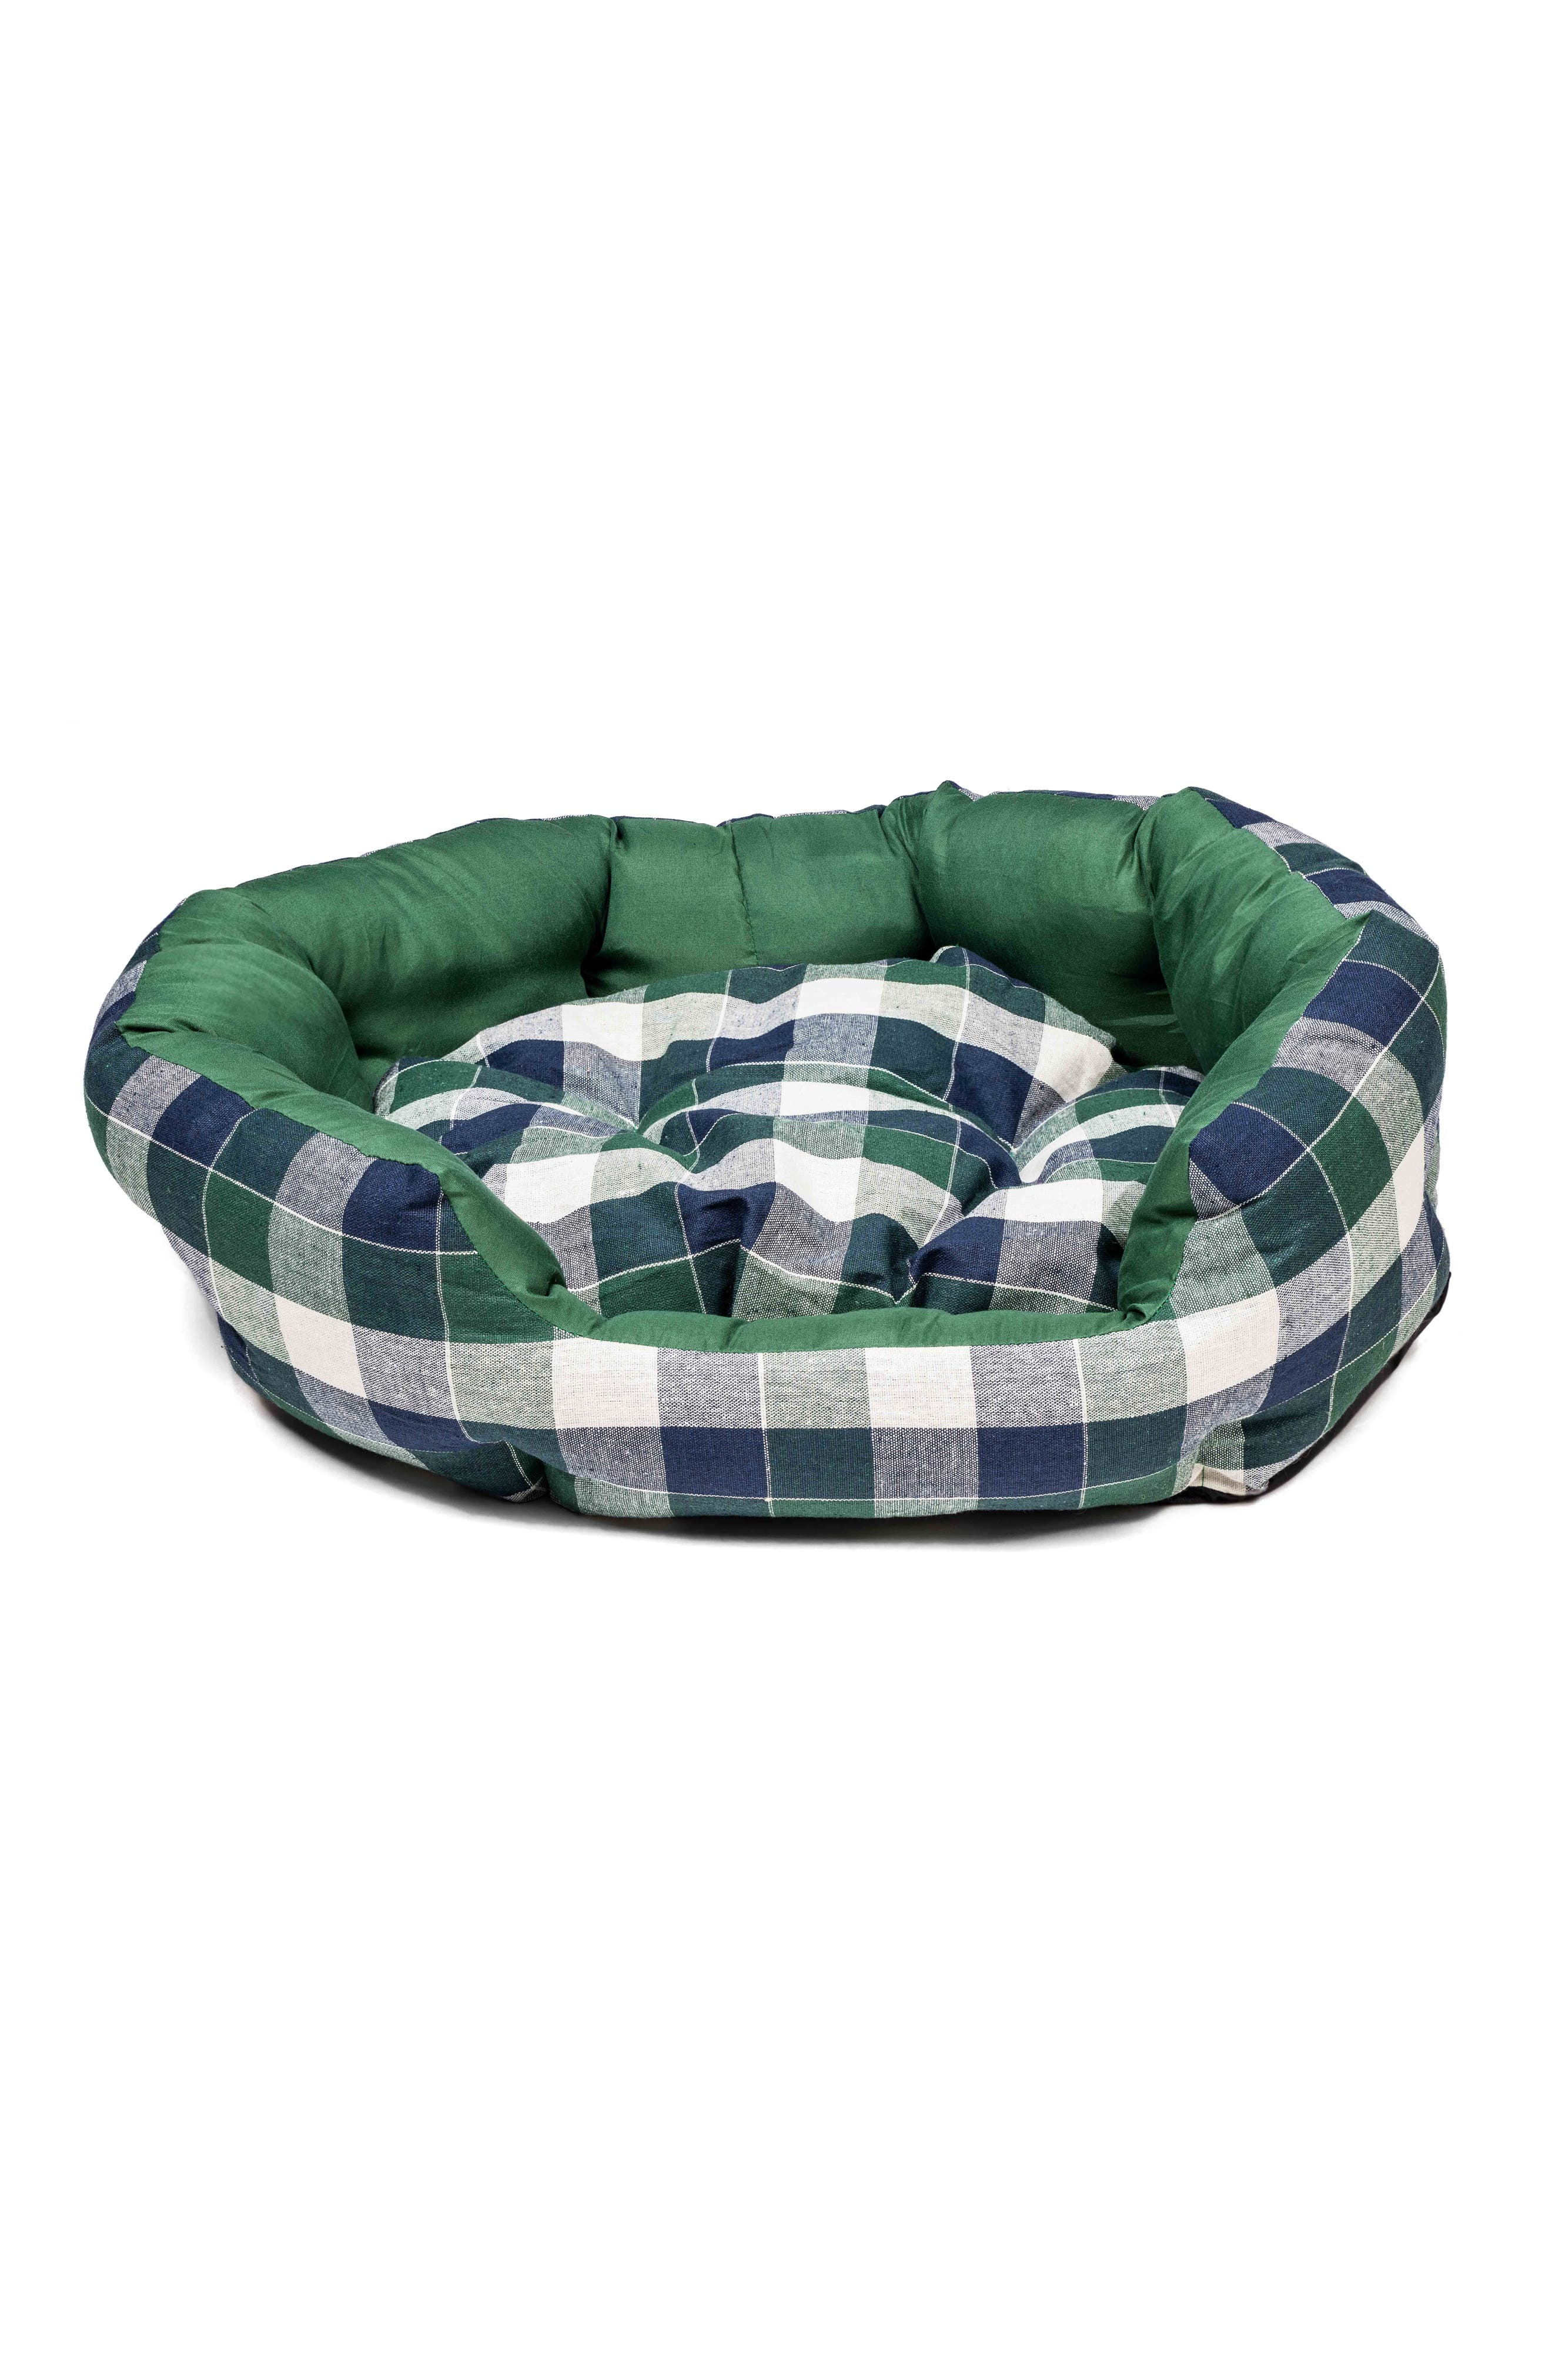 Hasley Round Pet Bed,                         Main,                         color, Green